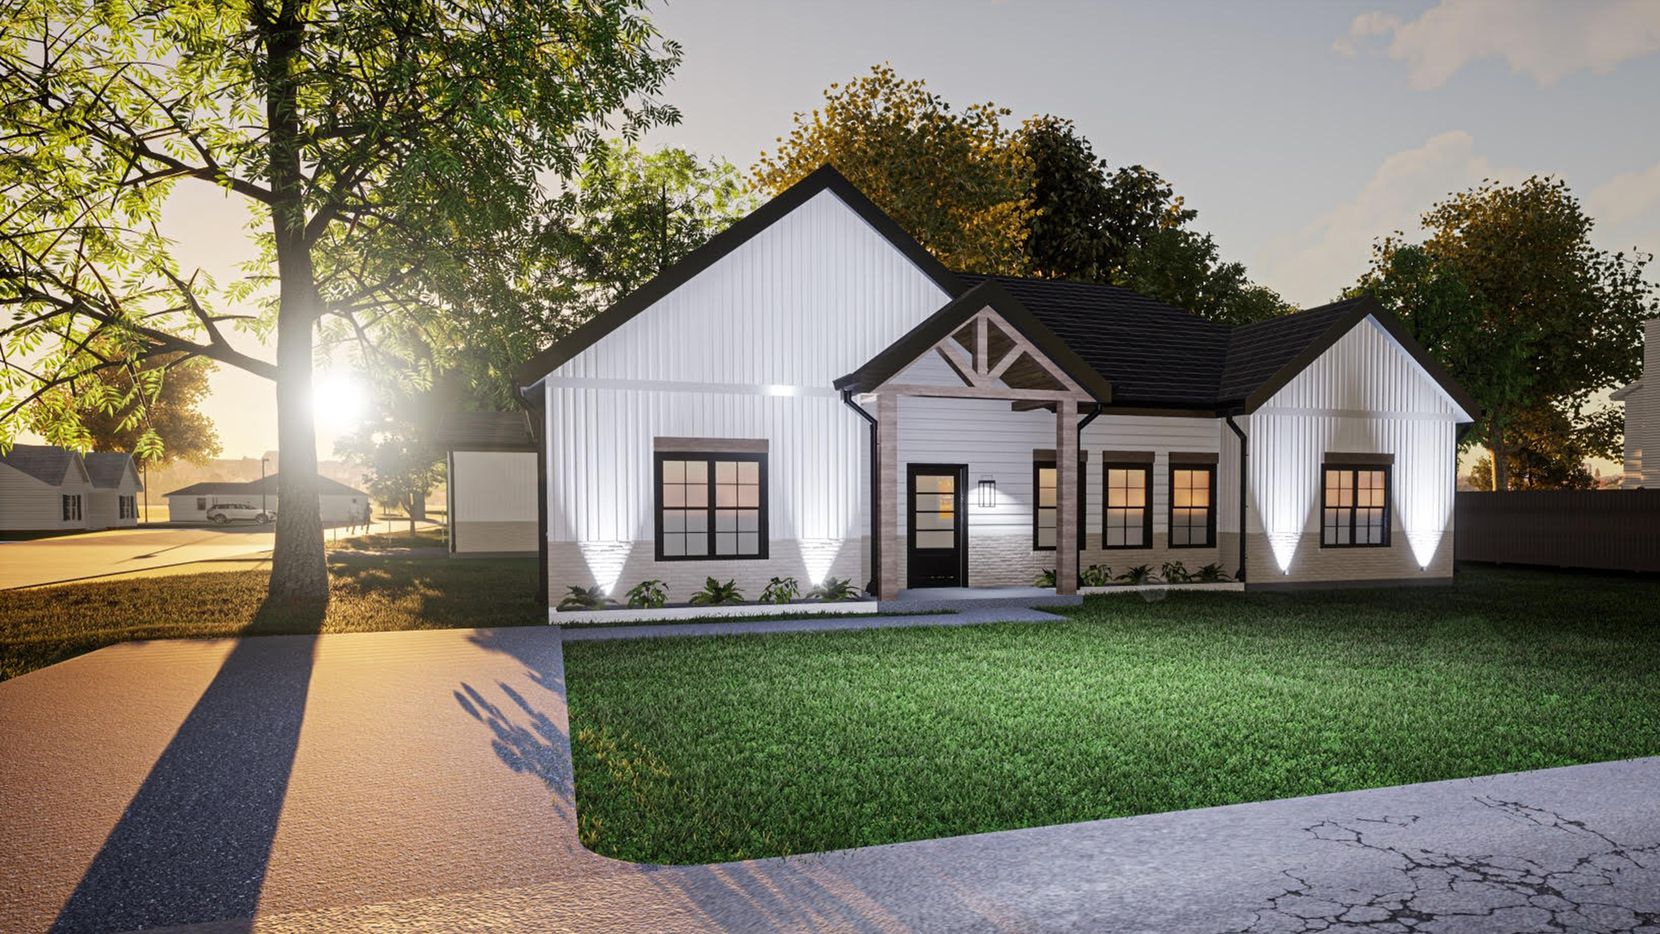 The home at 806 S. Jefferson In Kaufman is available for buyer finish customization and is priced at $305,000.